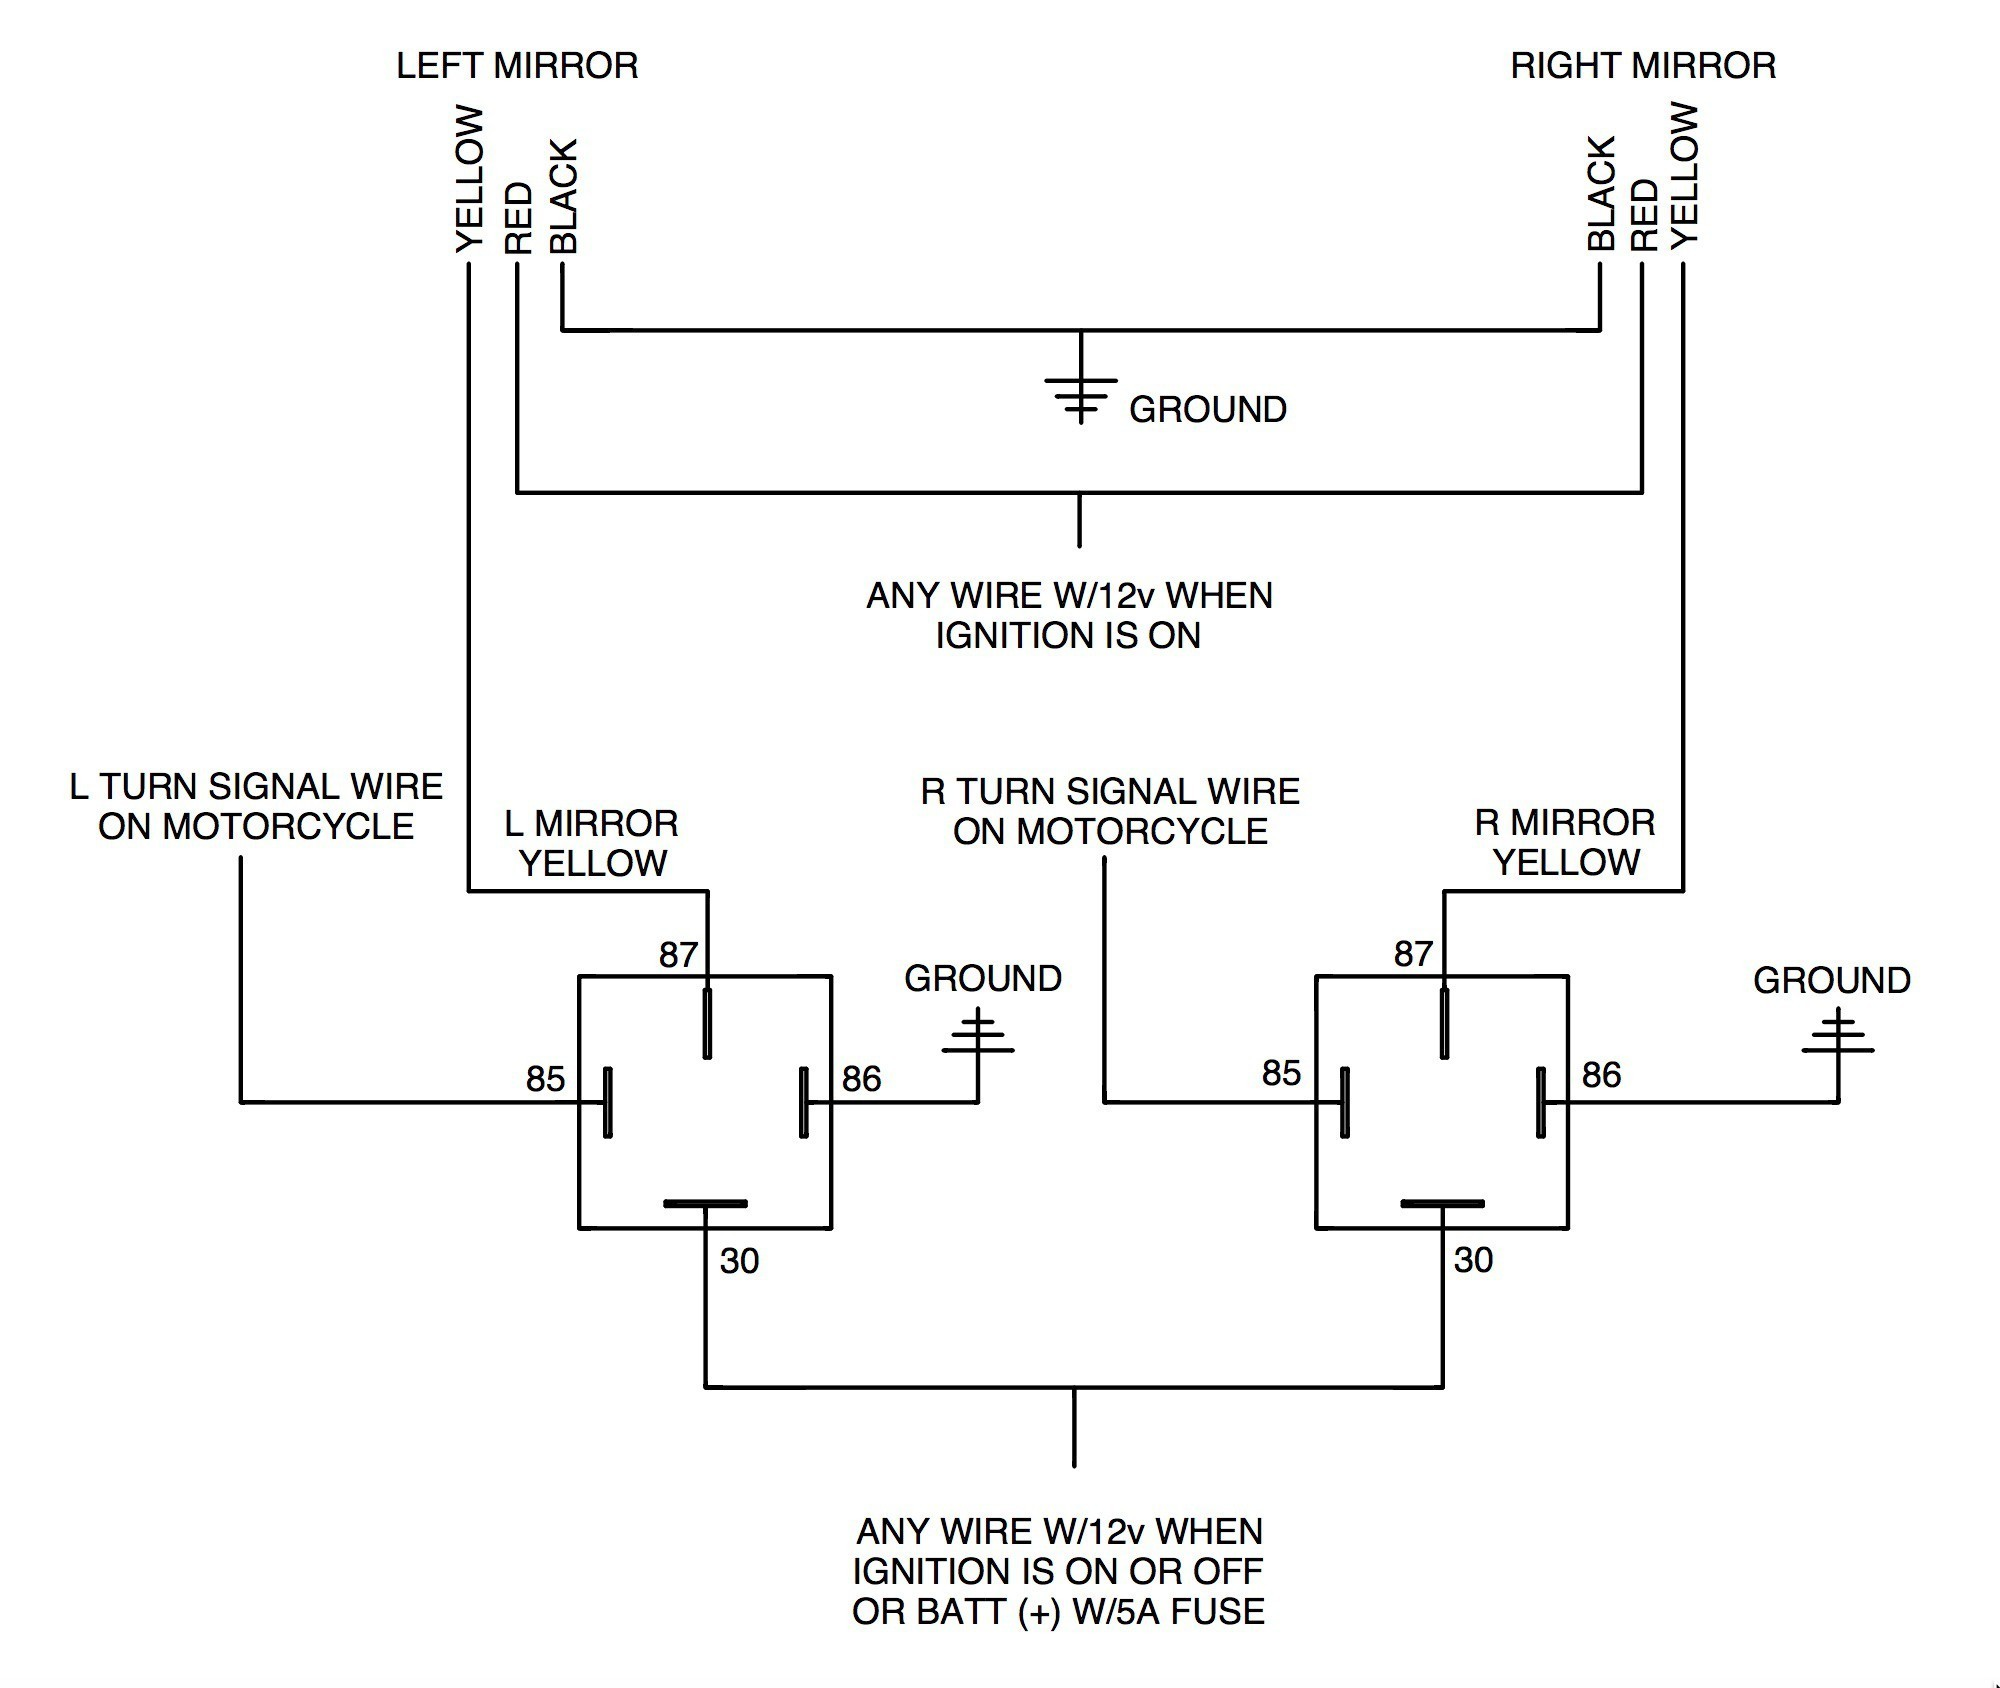 hight resolution of basic tail light wiring diagram wiring diagram source 1996 volvo camshaft diagram basic tail light wiring